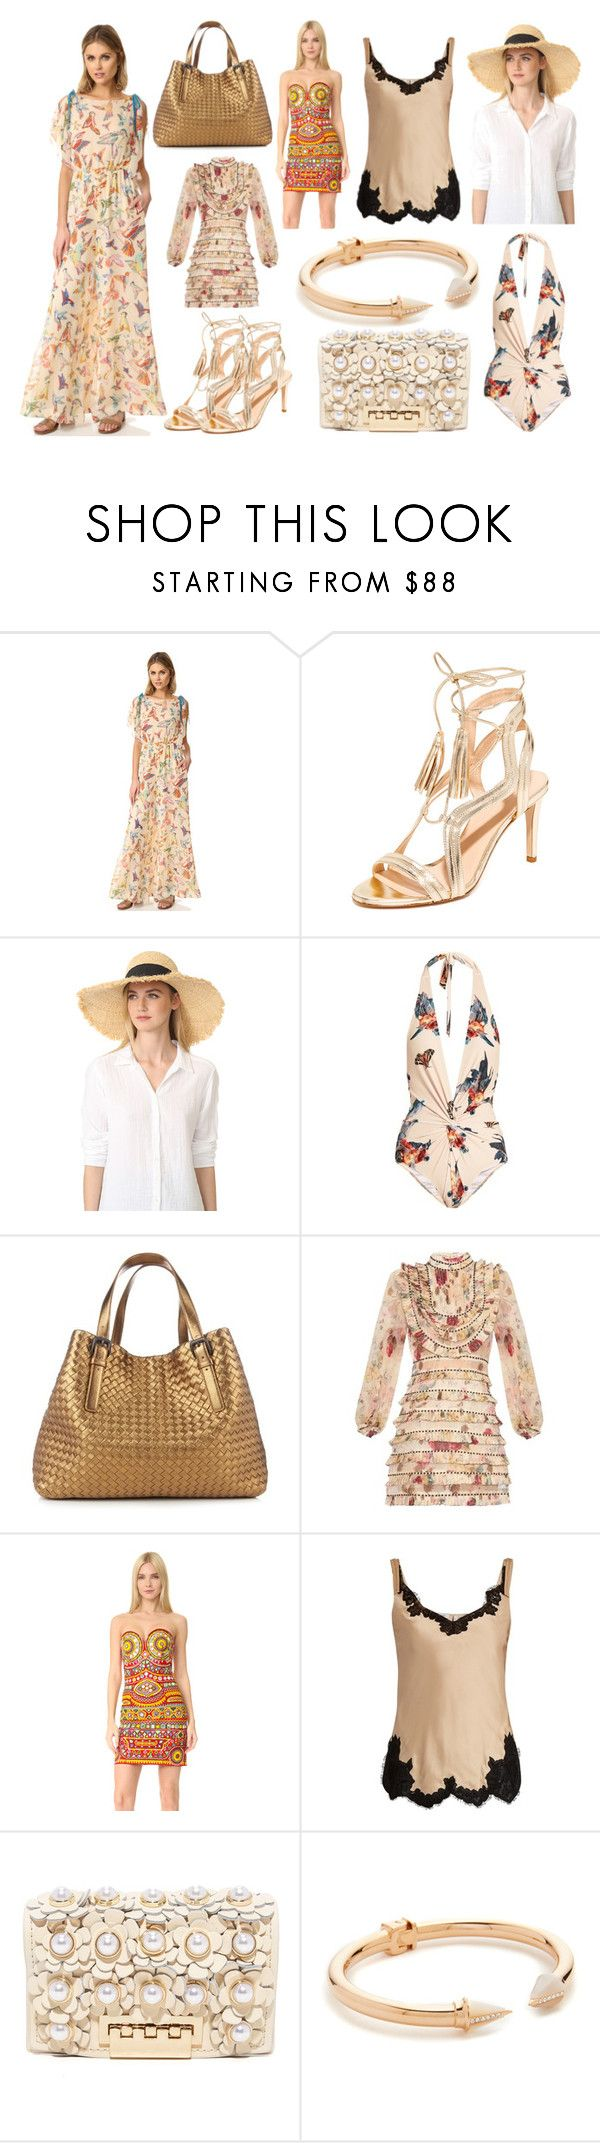 """Happy Weekend​ sale"" by cate-jennifer ❤ liked on Polyvore featuring RED Valentino, Club Monaco, Kate Spade, Katie Eary, Bottega Veneta, Zimmermann, Moschino, Helmut Lang, ZAC Zac Posen and Vita Fede"